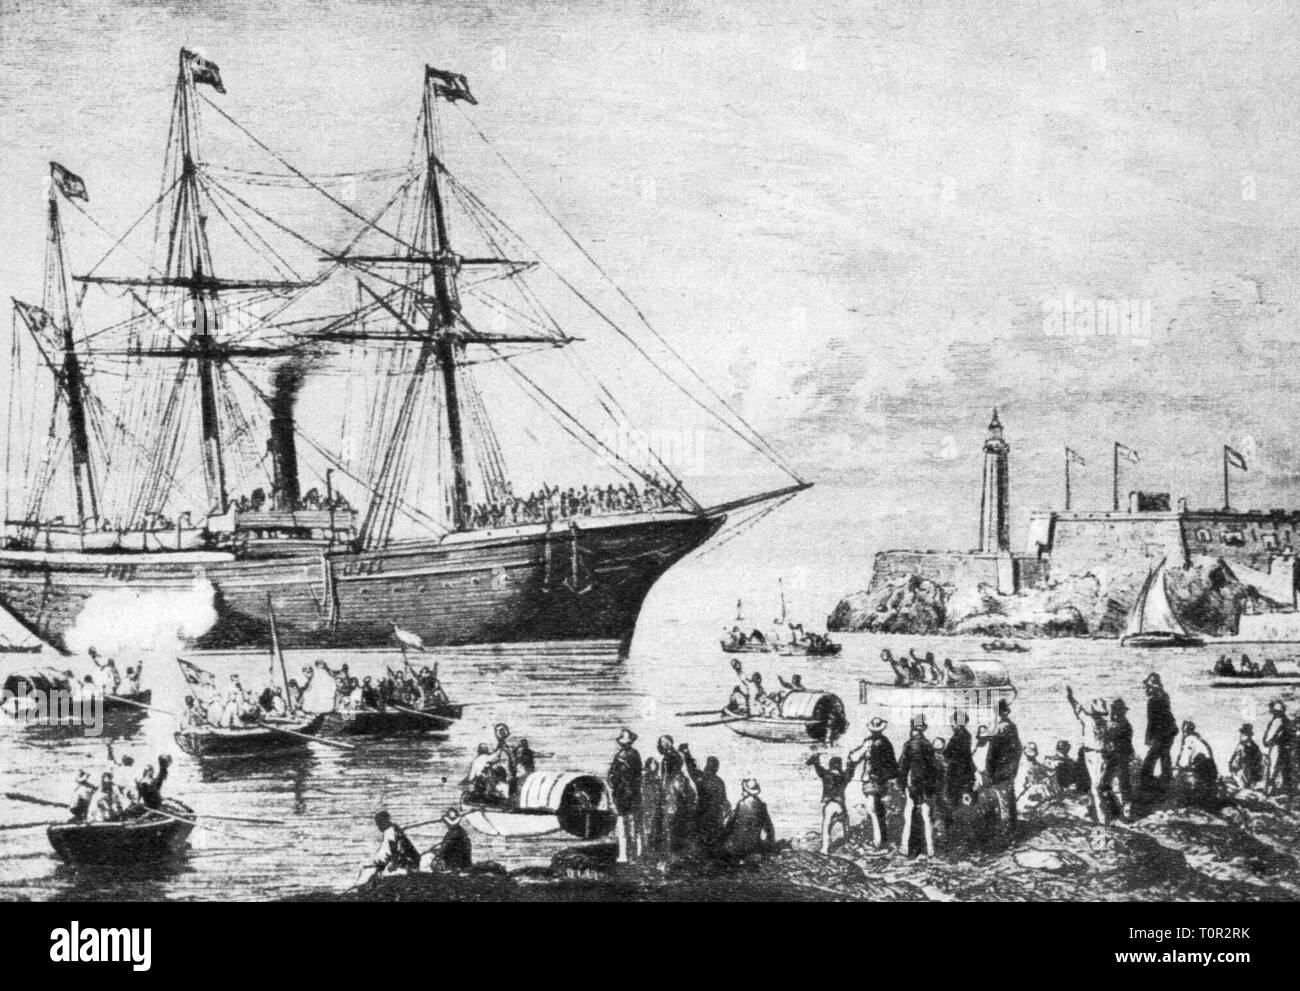 Ten Year's War 1868 - 1878, Spanish volunteers embark for Cuba, Barcelona, 1870, contemporary wood engraving, Cuban Wars of Independence, harbour, harbor, harbours, harbors, ports, boats, boat, transport, colonial war, Spain, America, 19th century, people, war, wars, volunteer, volunteers, ships, ship, historic, historical, Additional-Rights-Clearance-Info-Not-Available - Stock Image